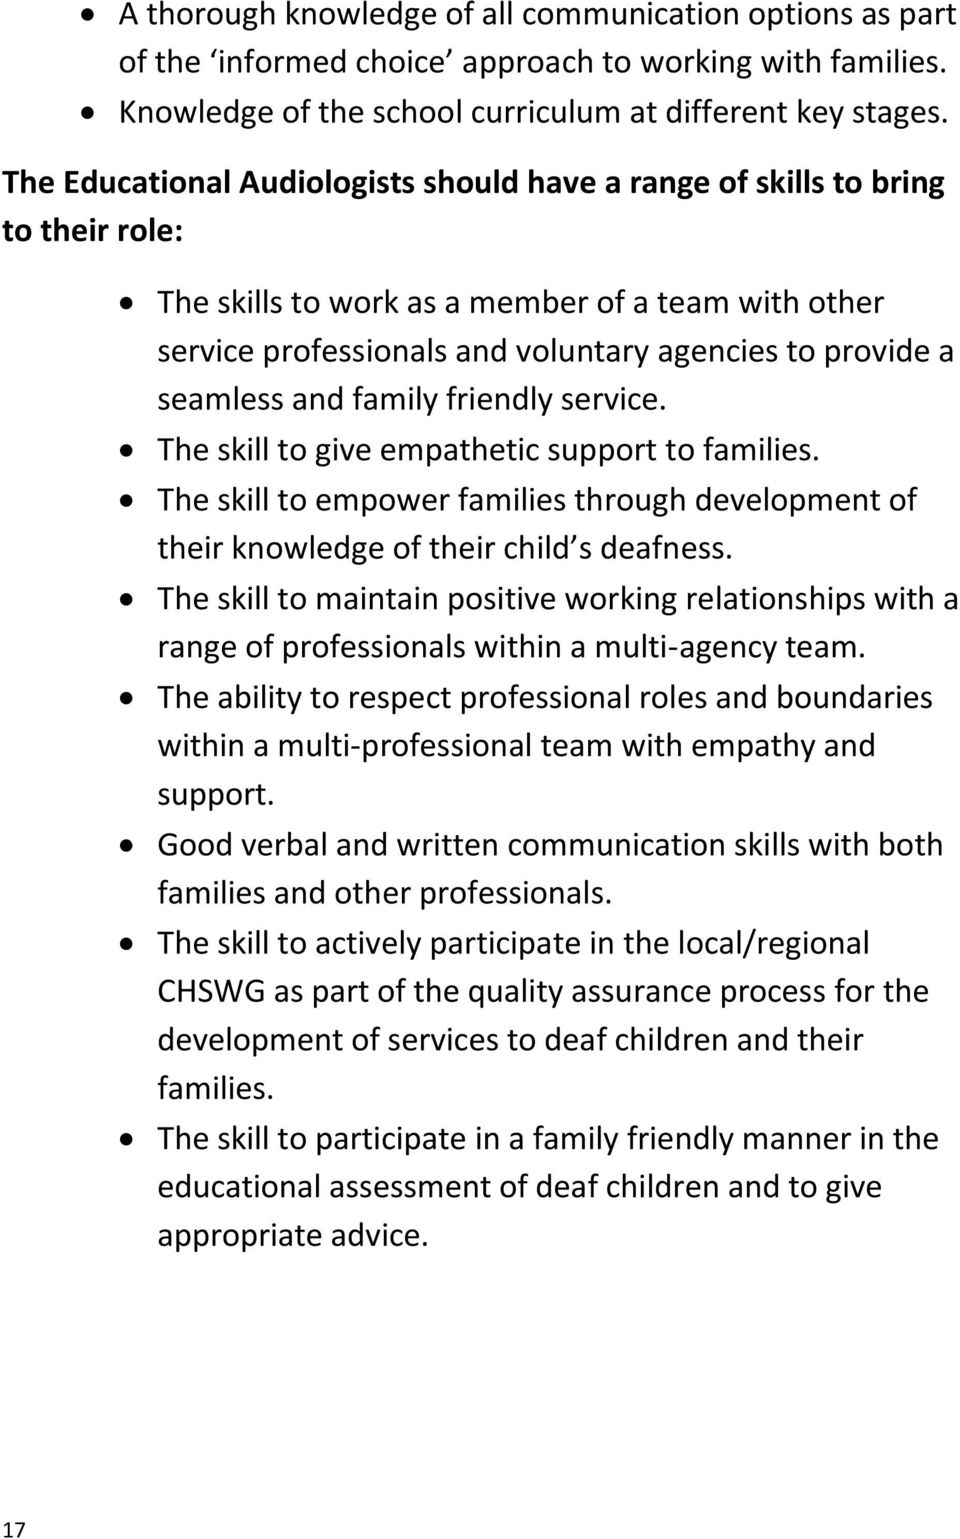 seamless and family friendly service. The skill to give empathetic support to families. The skill to empower families through development of their knowledge of their child s deafness.